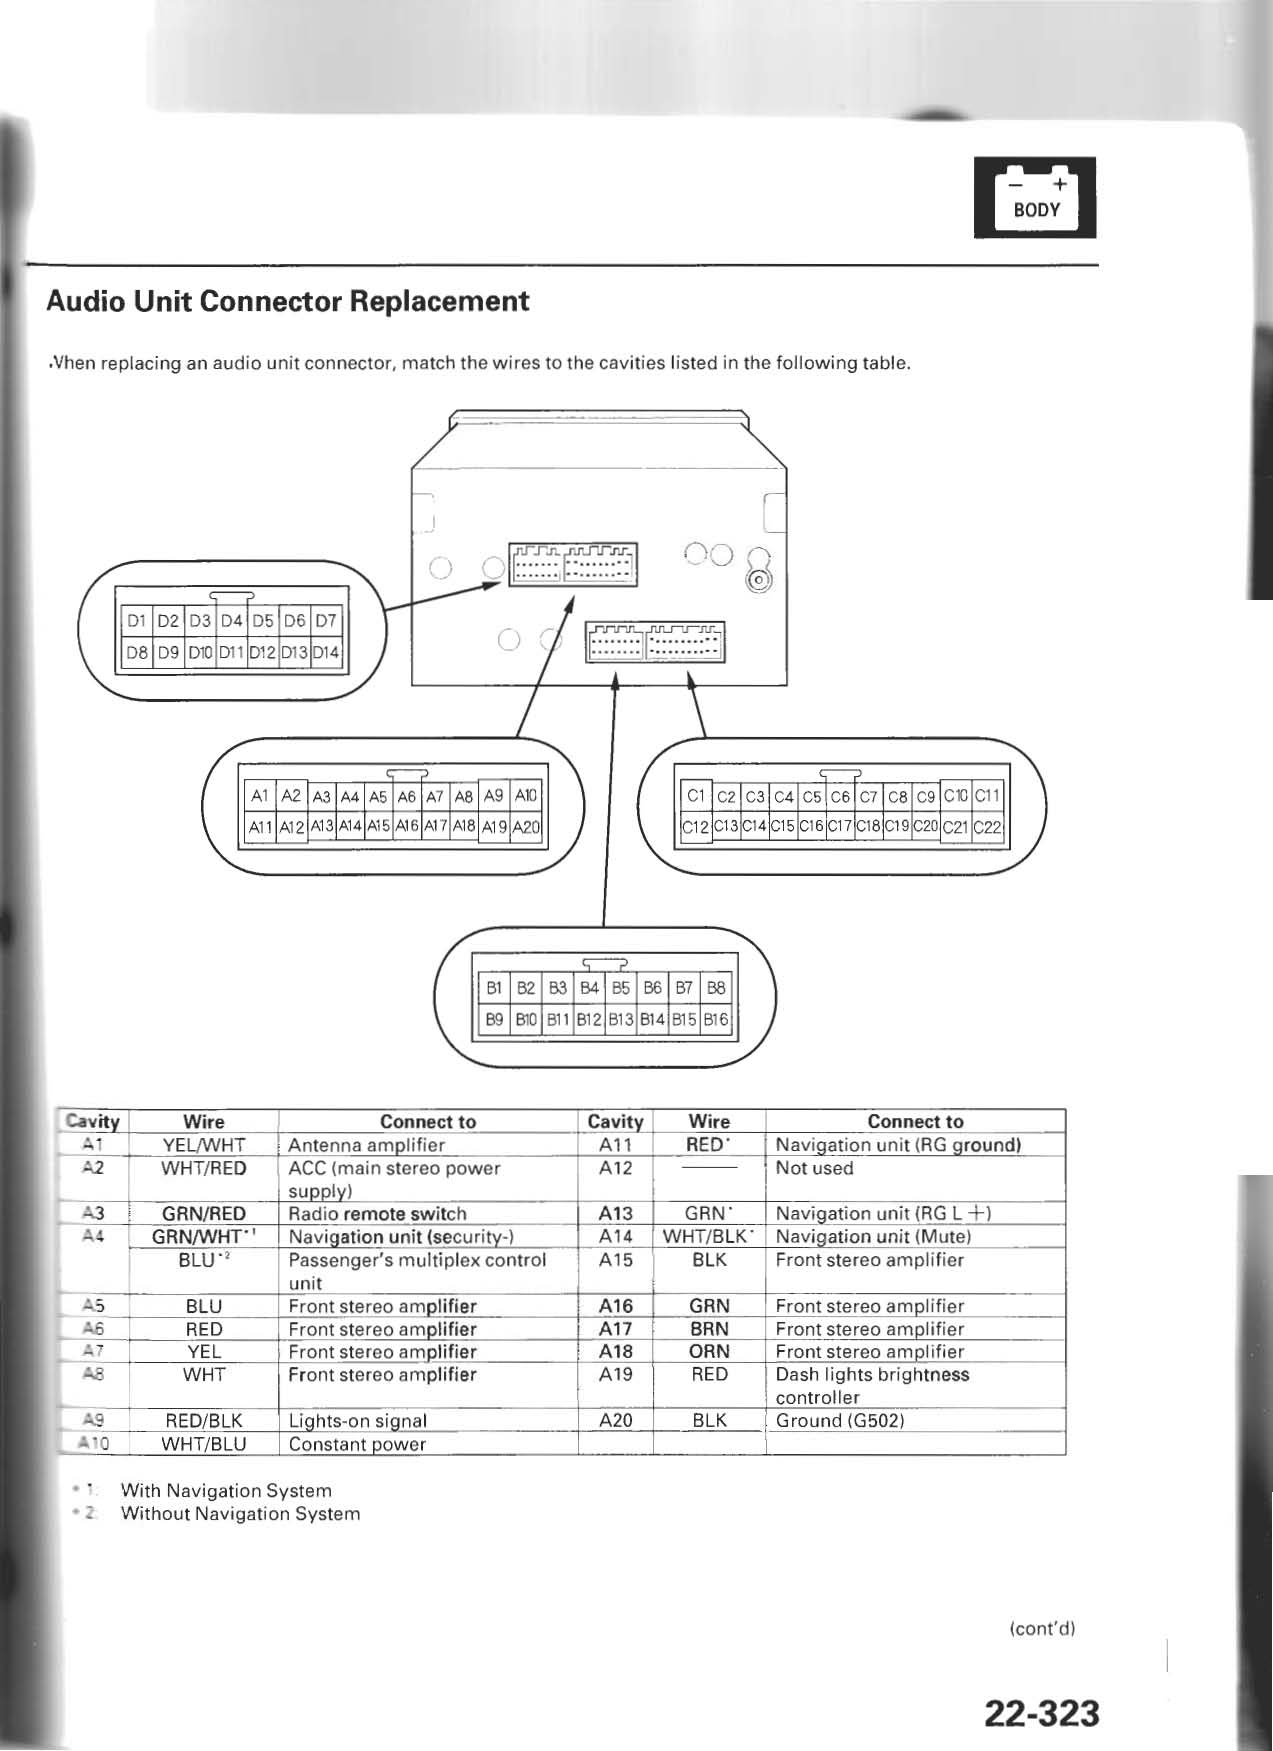 30384d1111169775 retrofit 01 04 mdx w bluetooth outs 2003 mdx radio retrofit 01 04 mdx w bluetooth page 2 acura mdx forum acura 2005 acura mdx stereo wiring diagram at gsmx.co